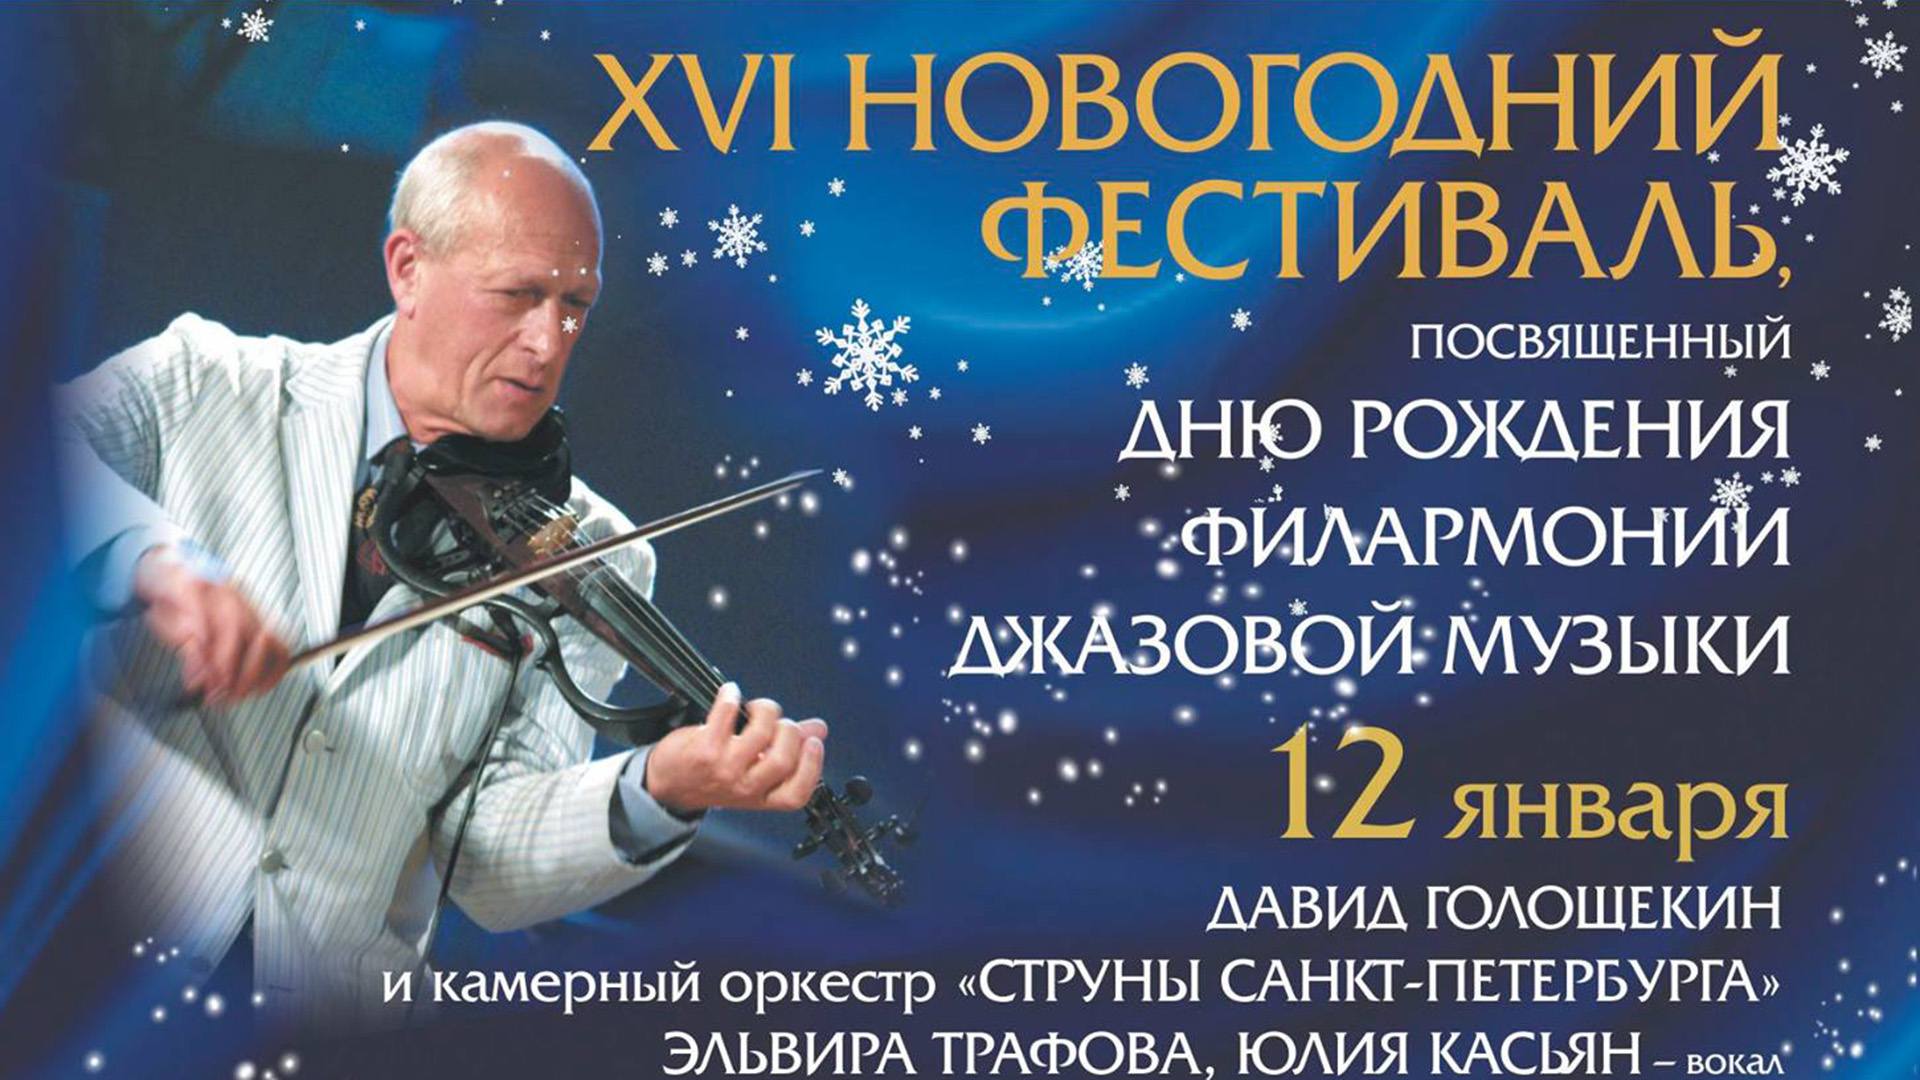 Konzert - New Years Festival in St. Petersburg